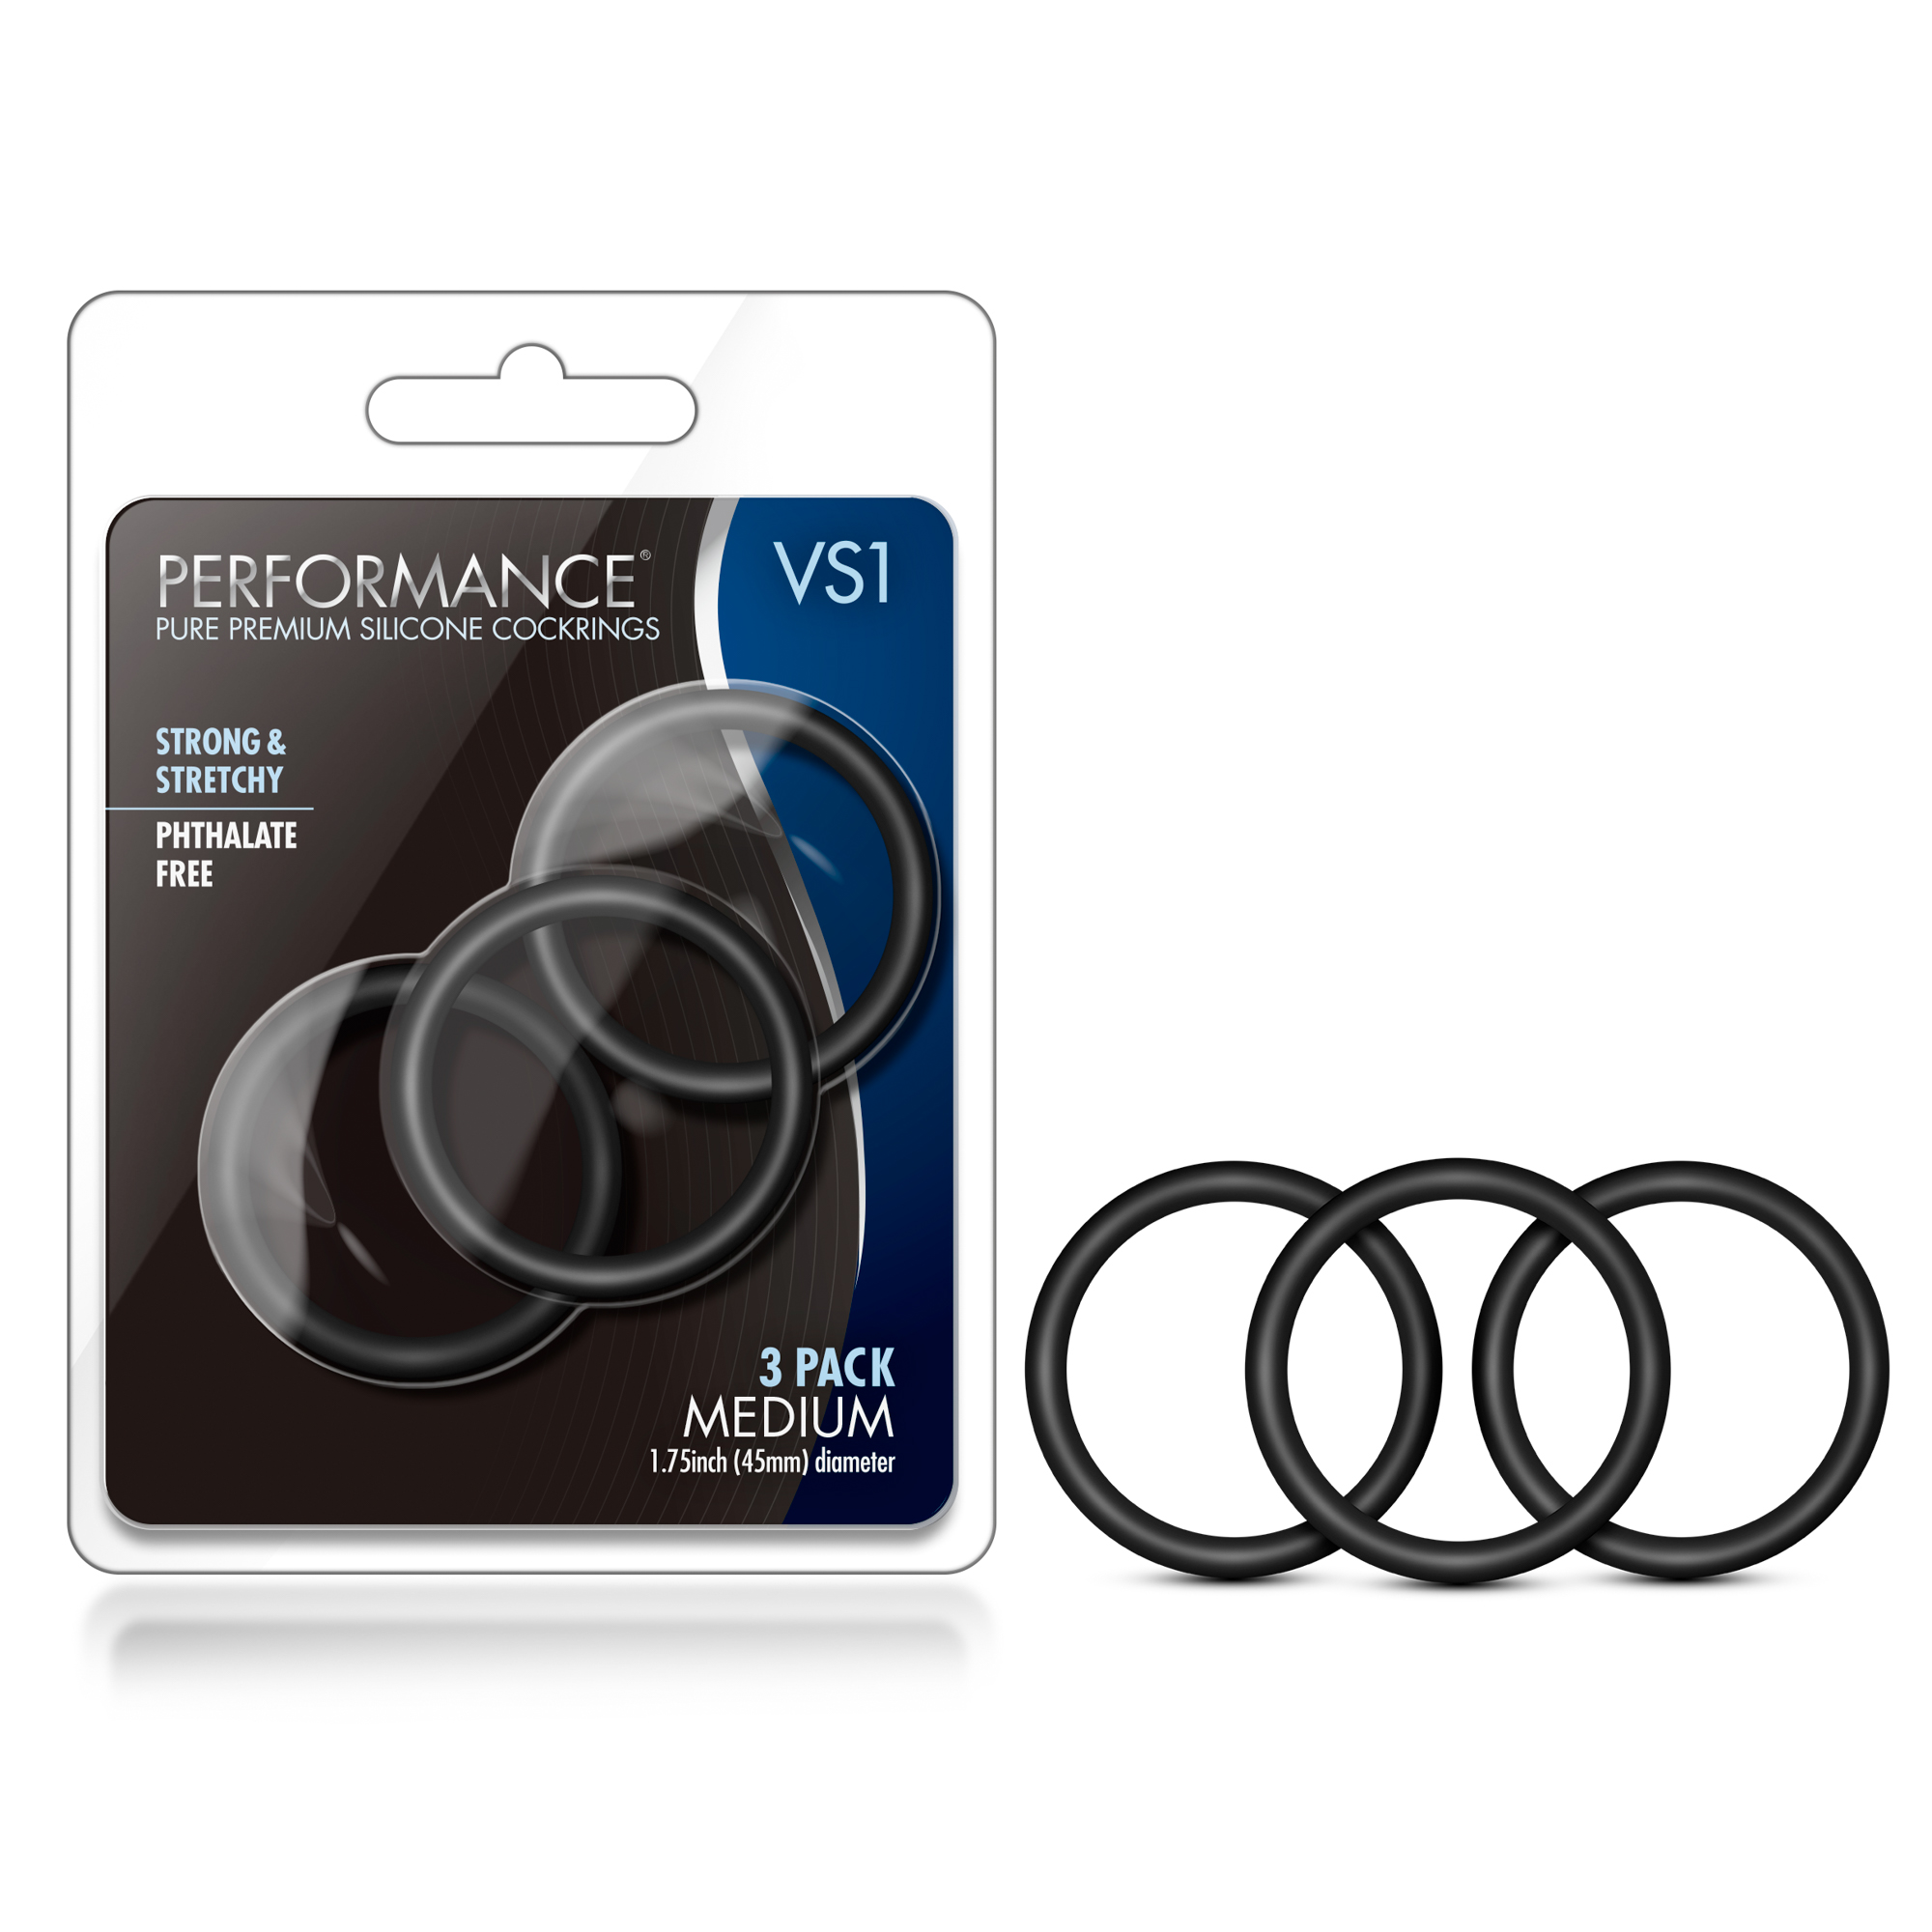 Performance - VS1 Pure Premium Silicone Cock Rings - Medium - Black